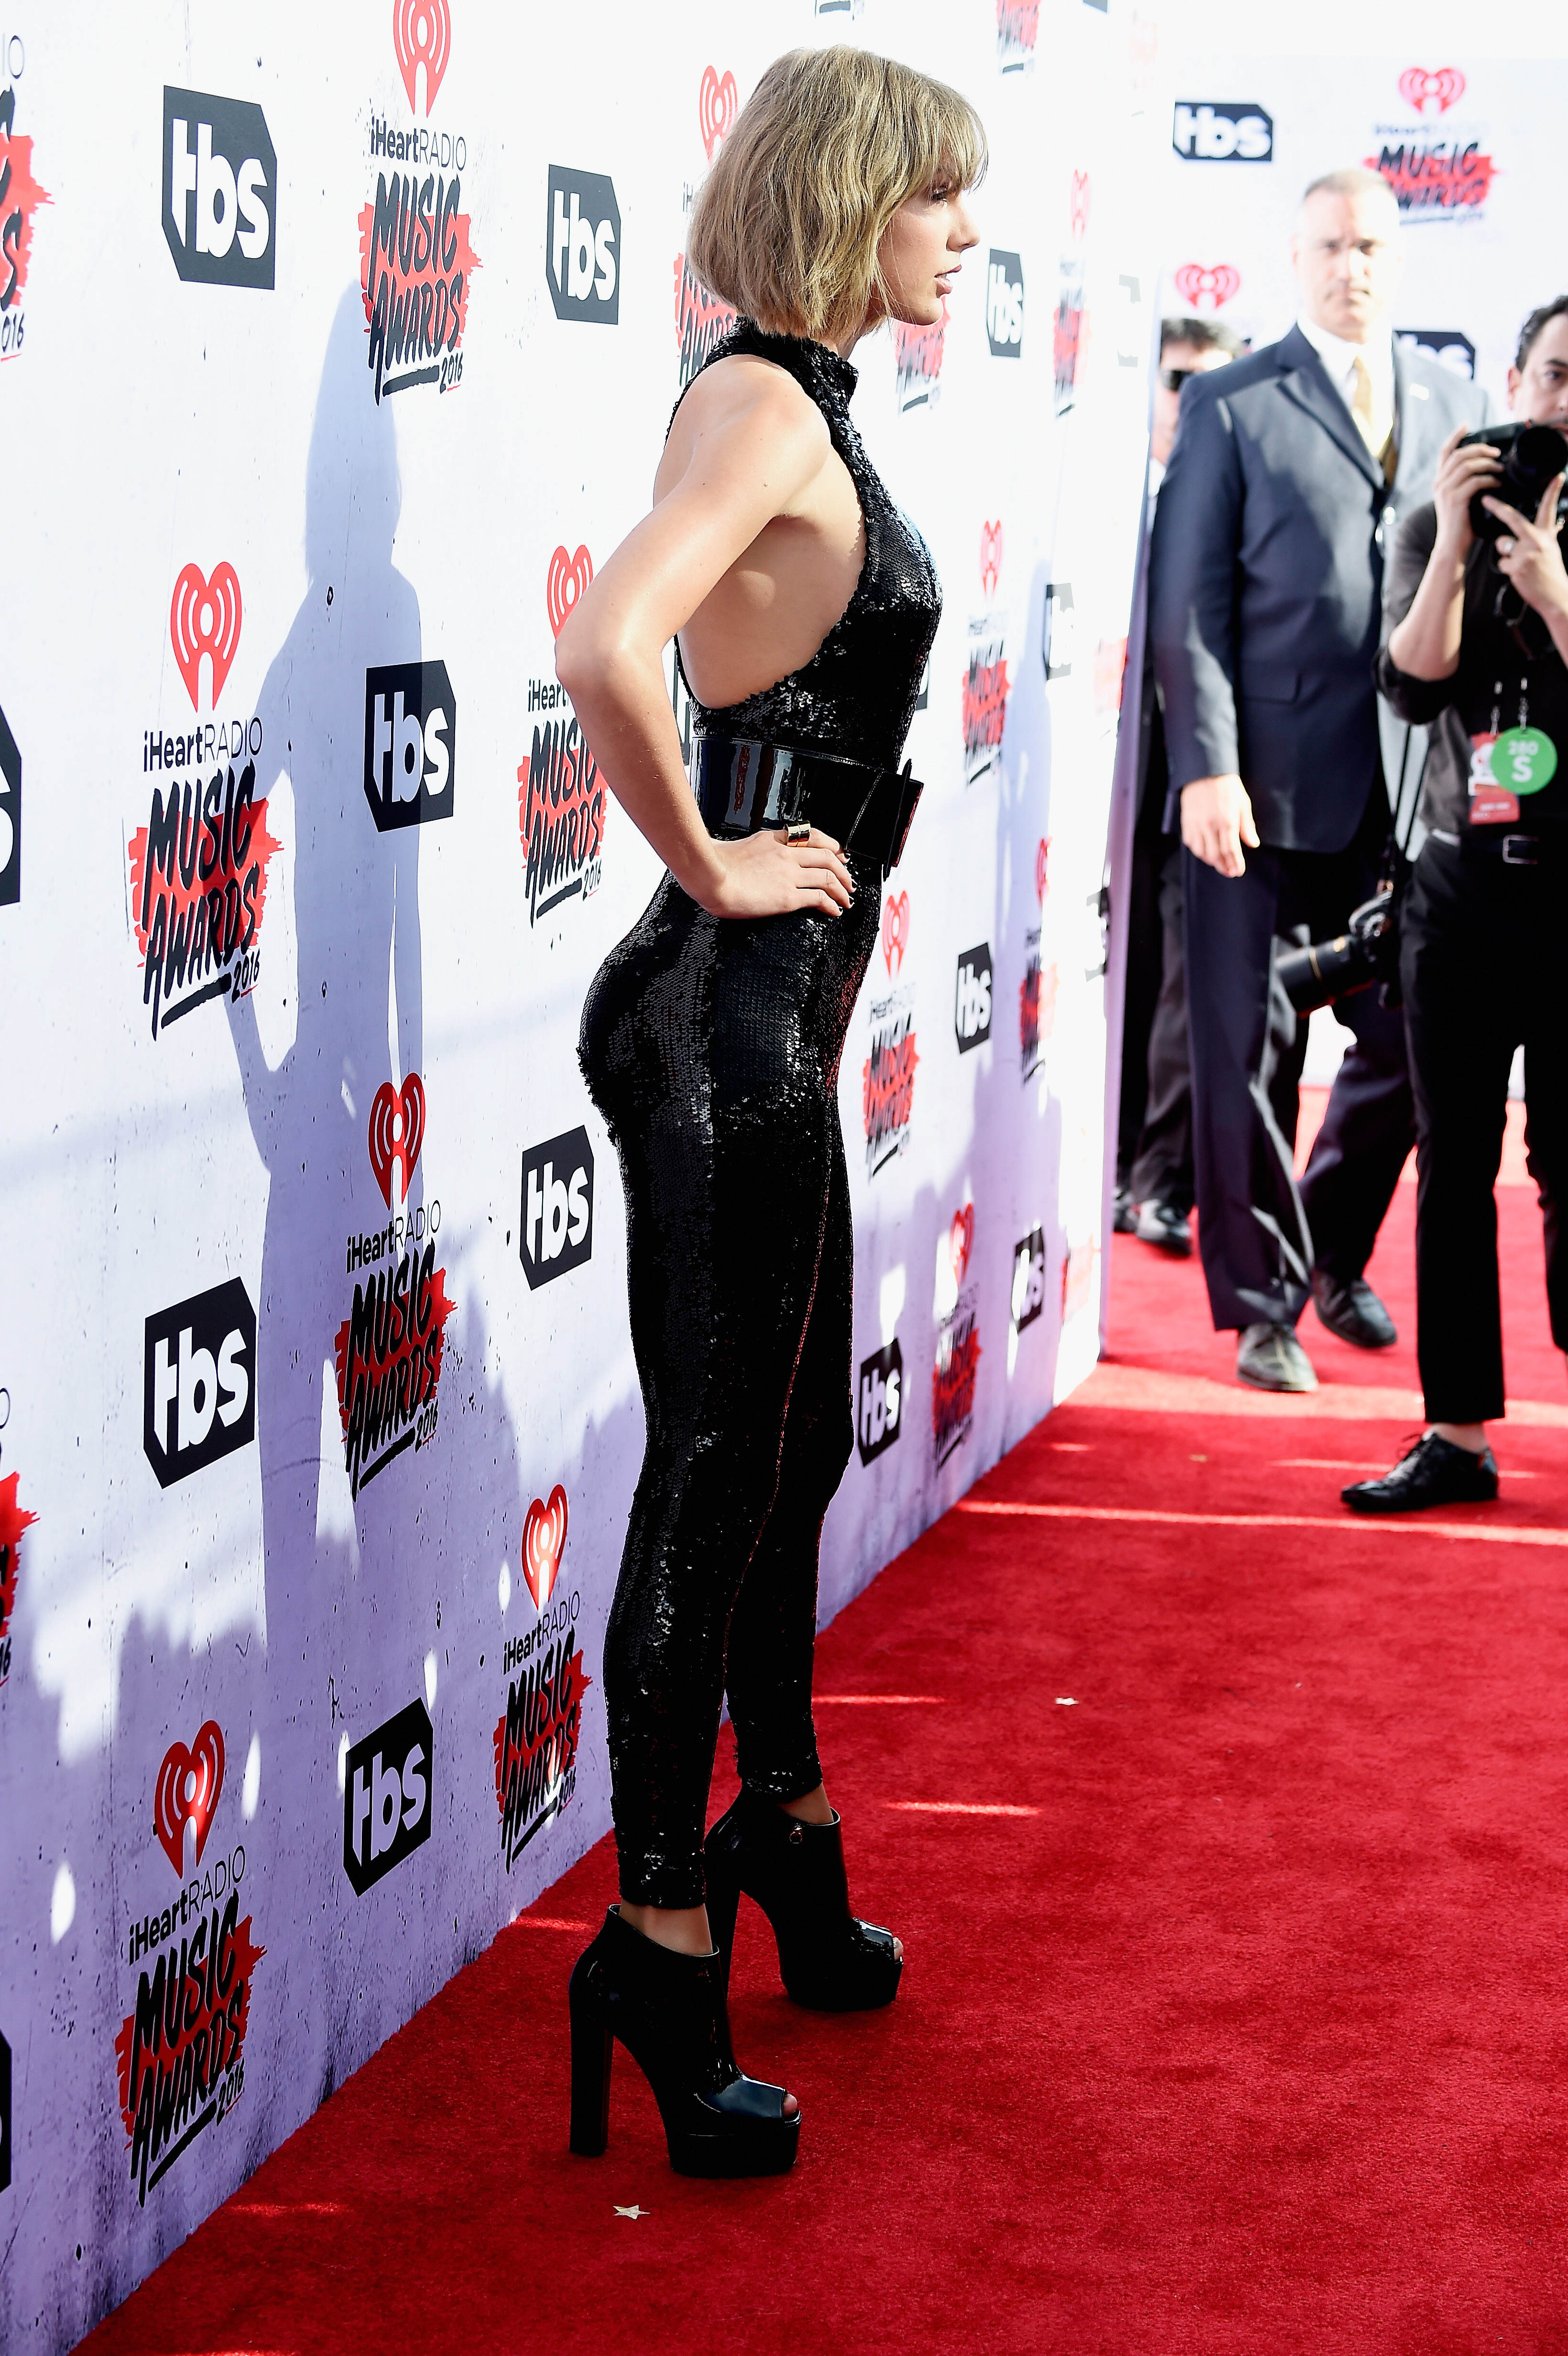 People Are Accusing Taylor Swift Of Getting Bum Implants Because Of This Photo GettyImages 518970848